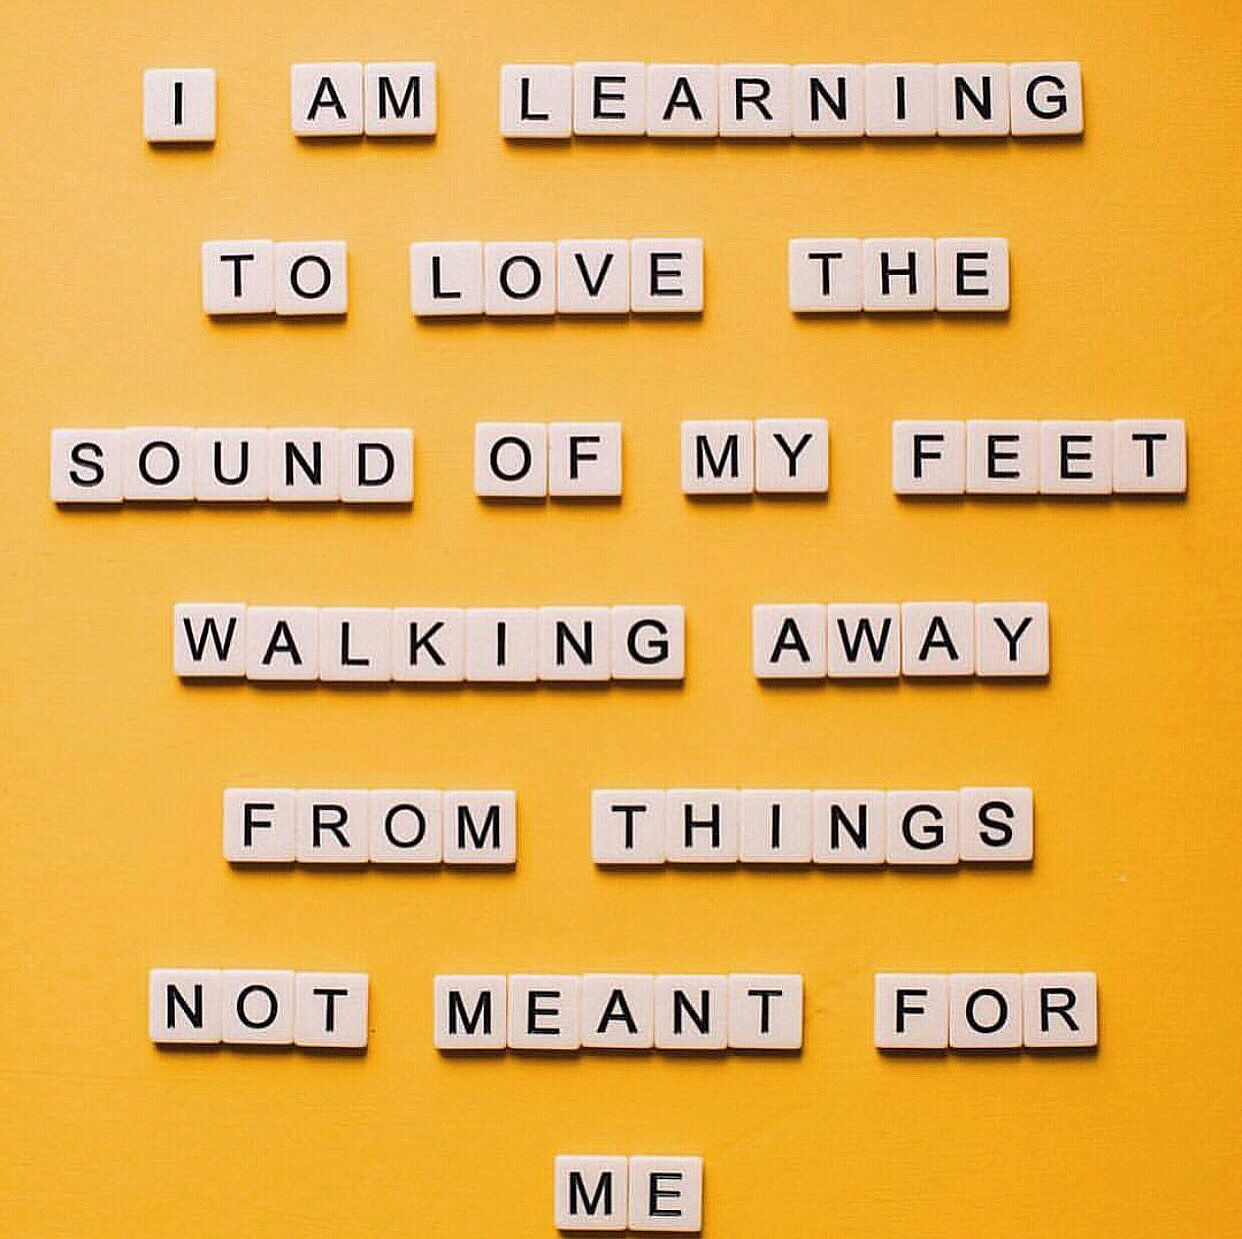 Learning to walk away